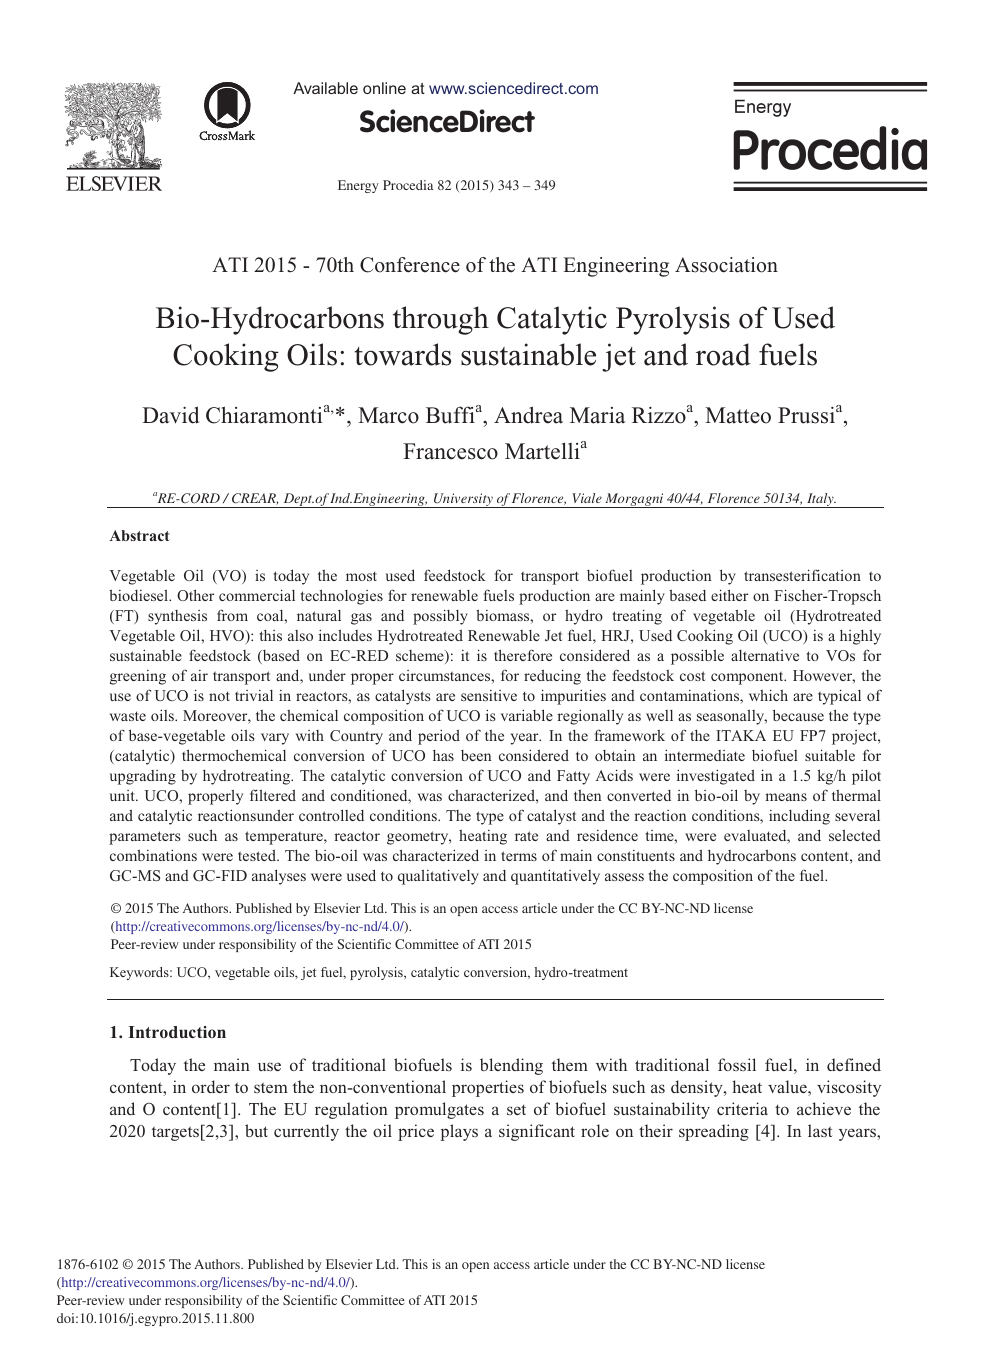 Bio-Hydrocarbons through Catalytic Pyrolysis of Used Cooking